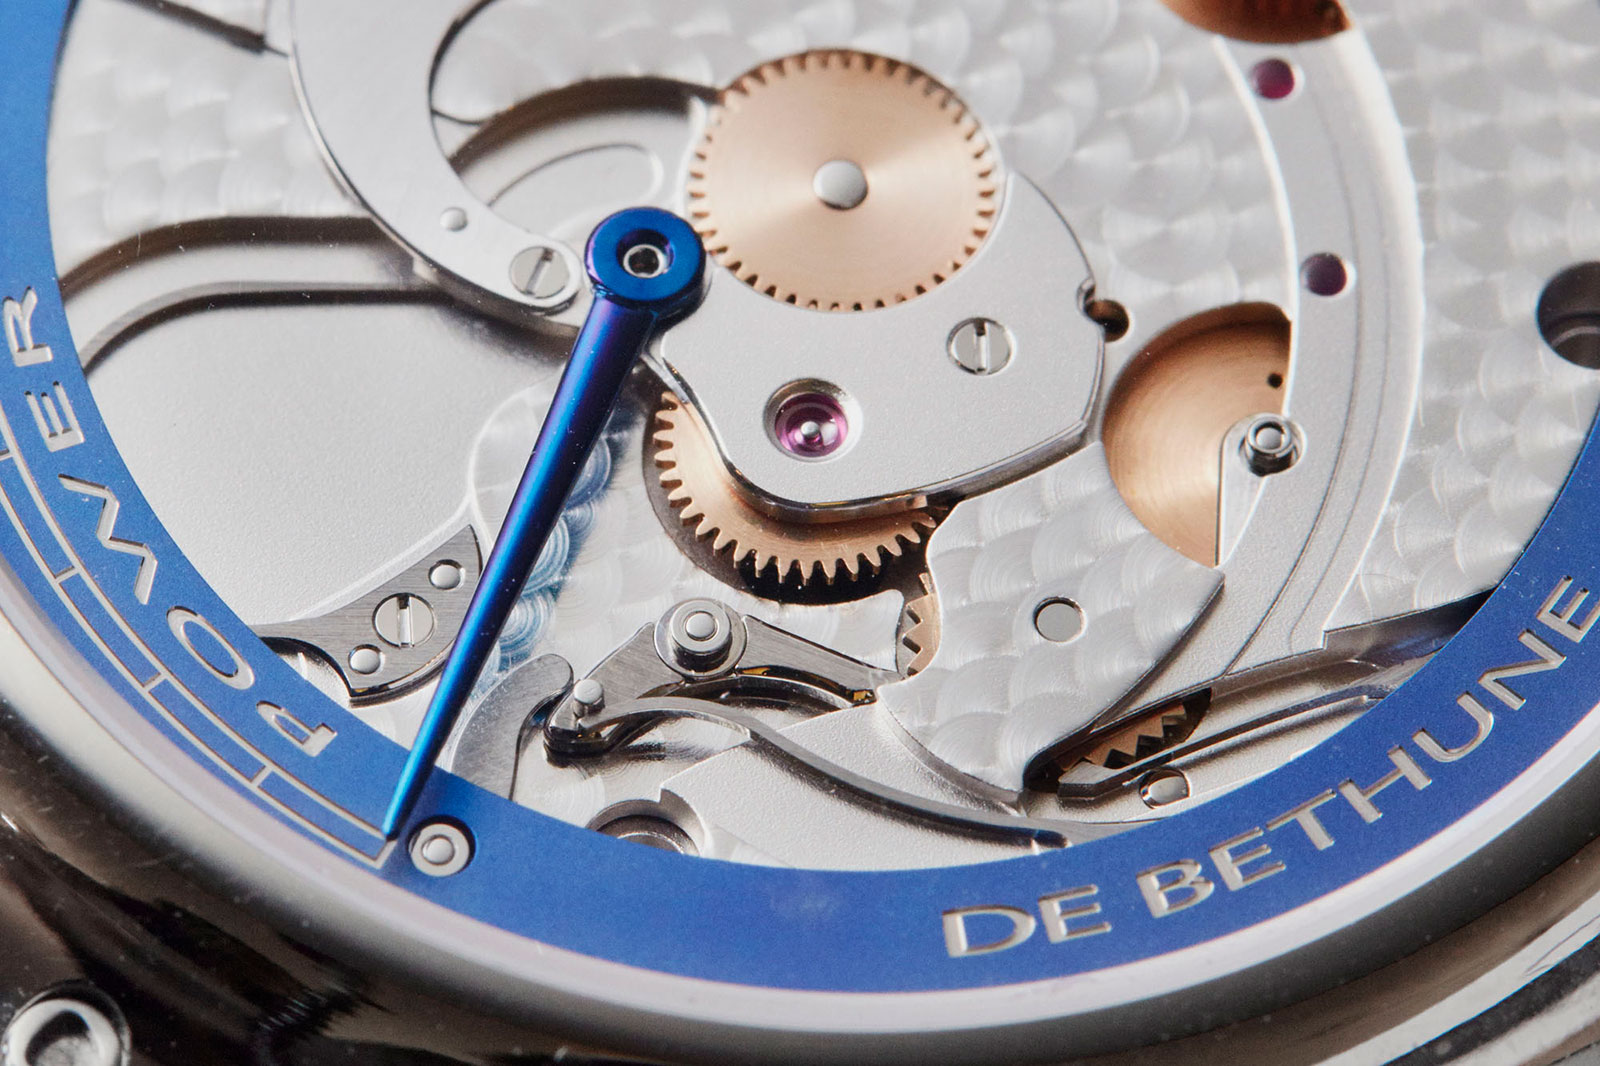 De Bethune DB28 steel wheels watch 7